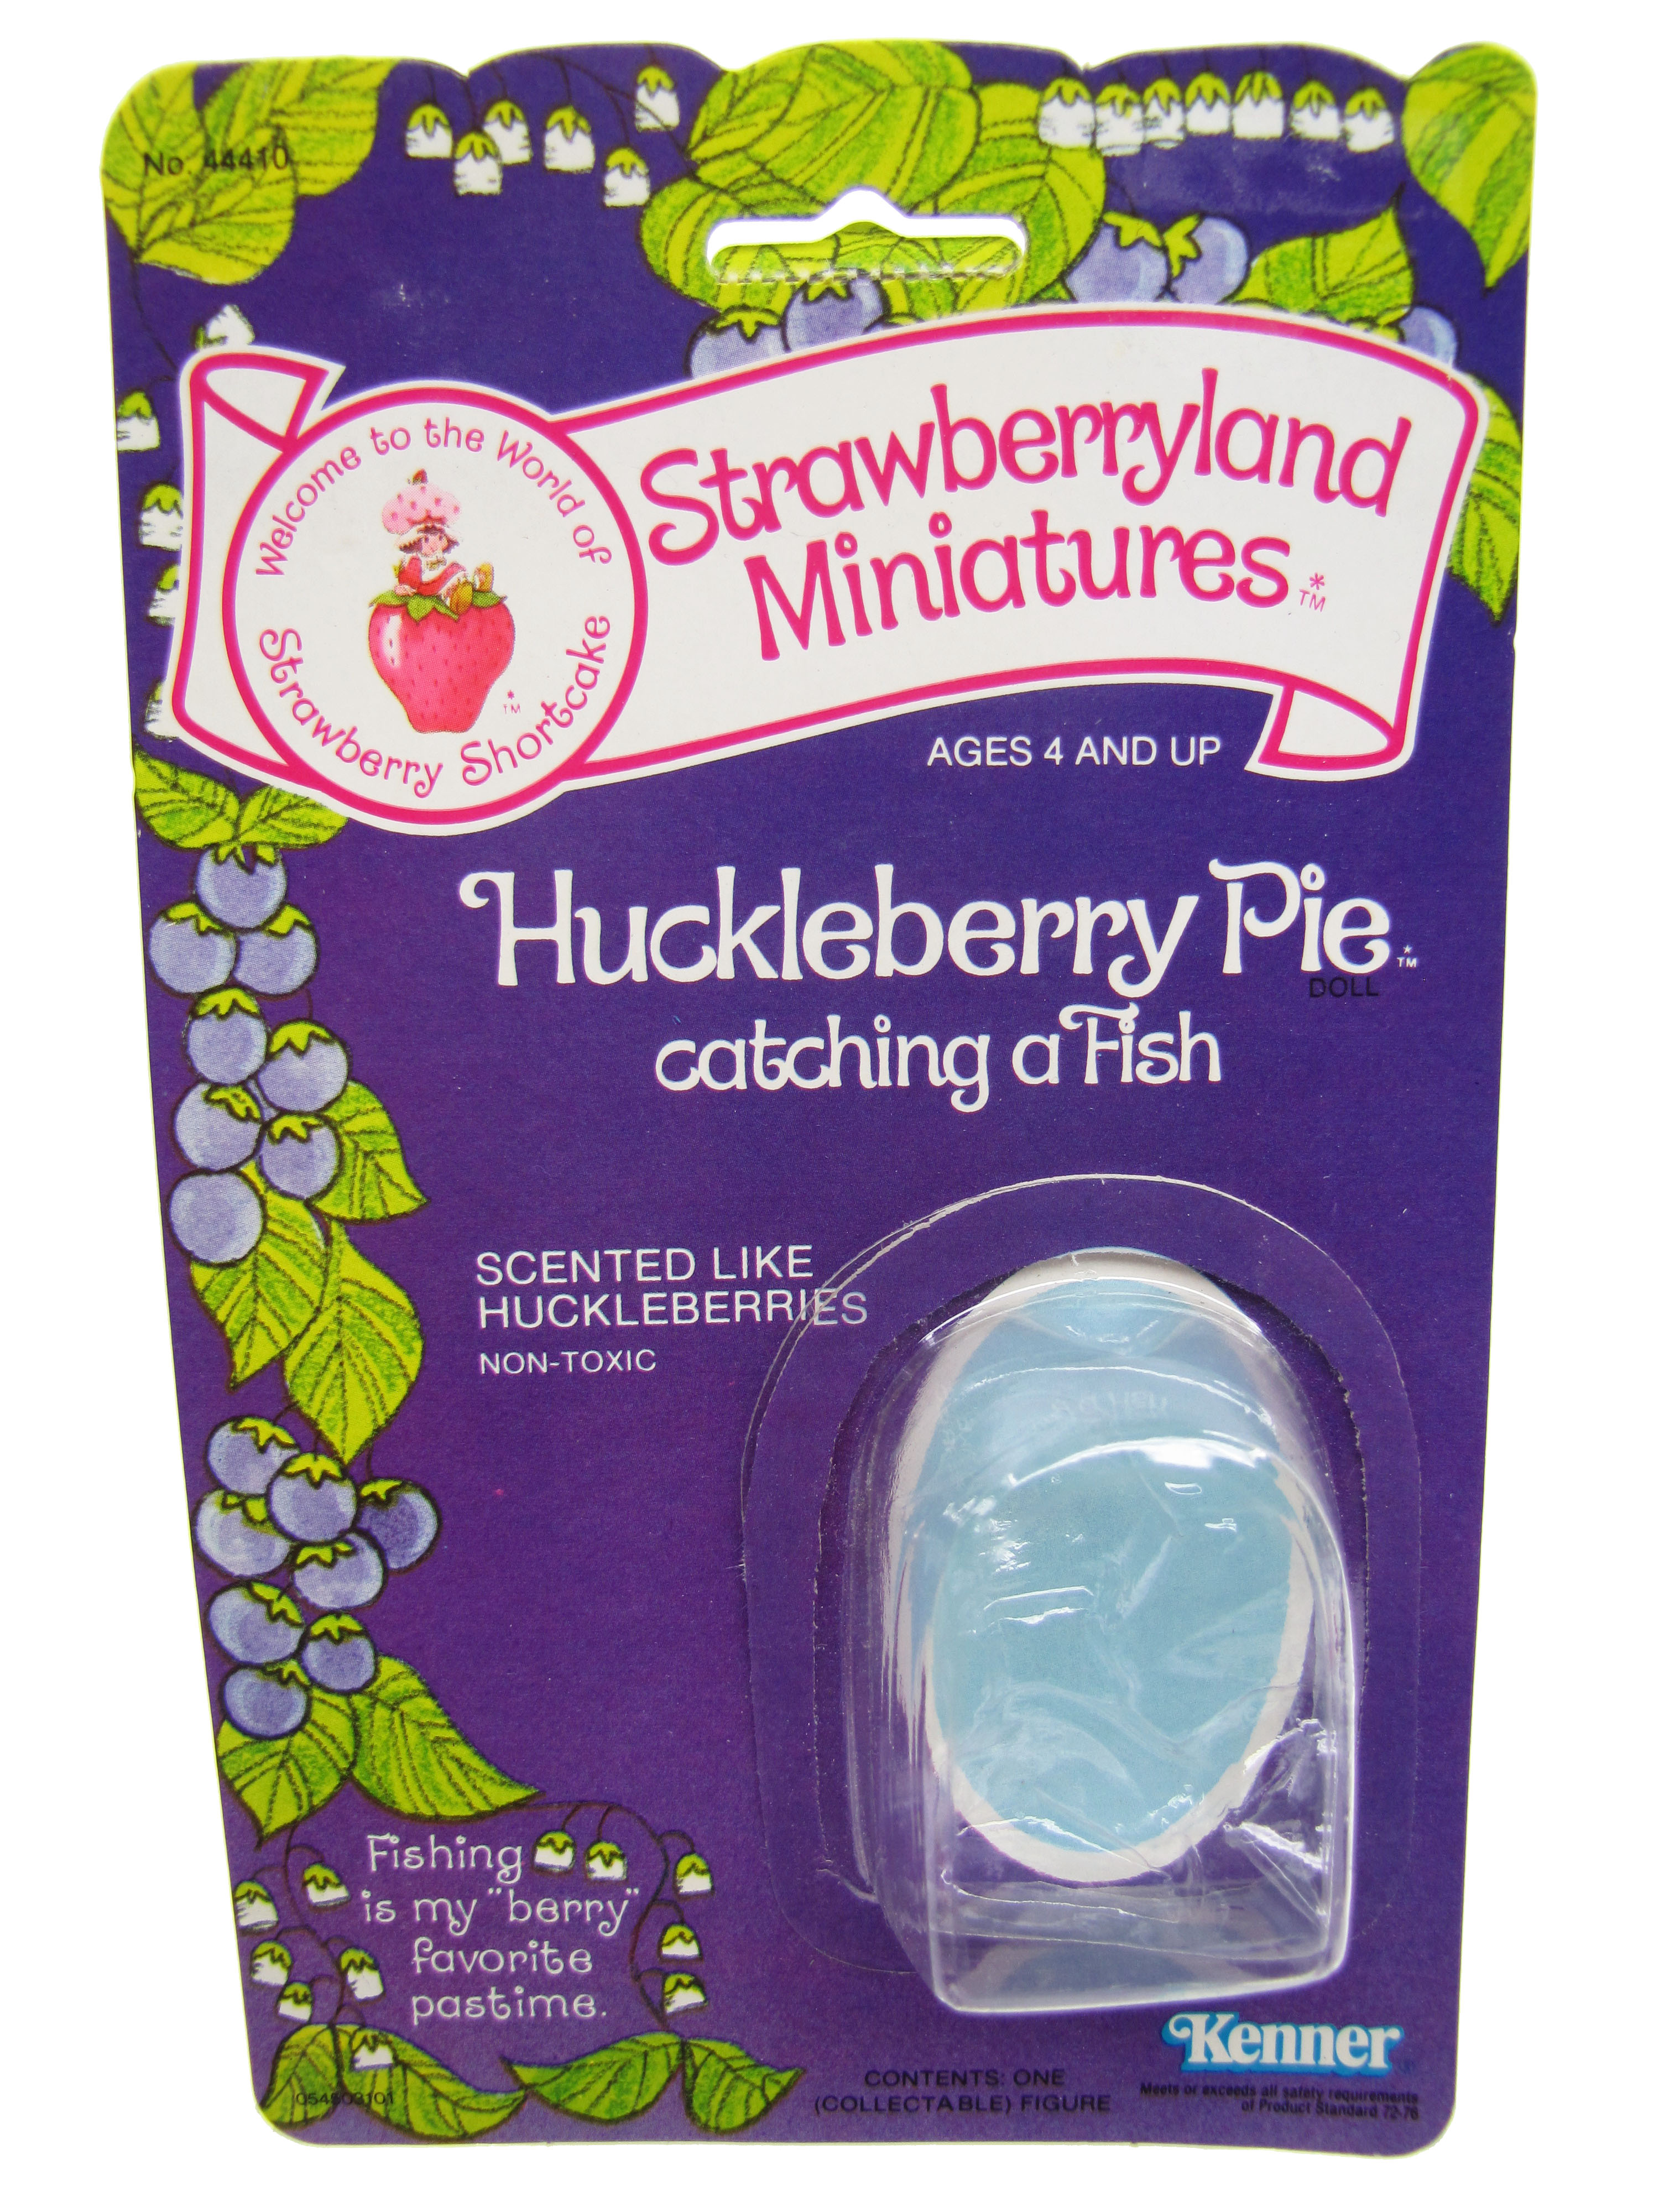 Strawberryland Miniatures Huckleberry Pie Catching a Fish Card